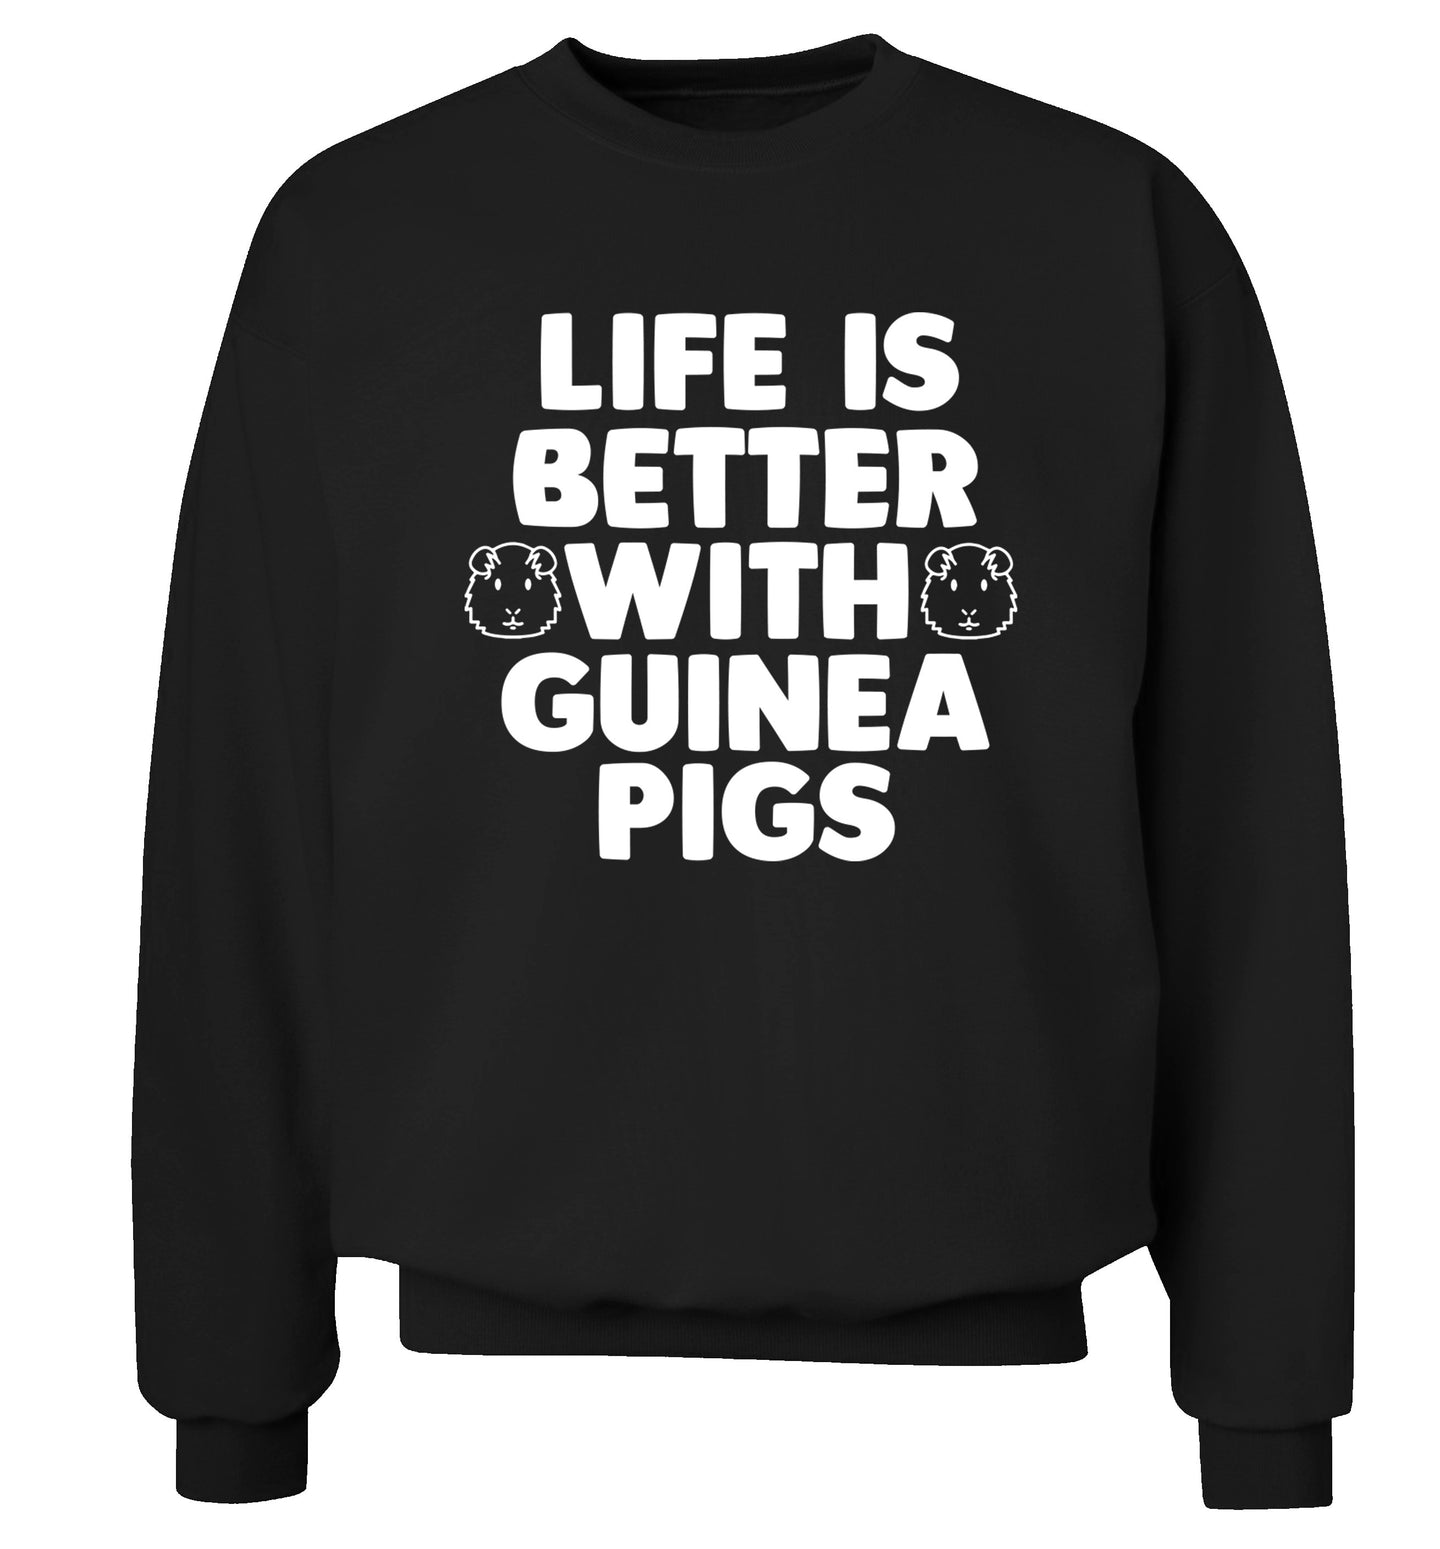 Life is better with guinea pigs Adult's unisex black  sweater 2XL